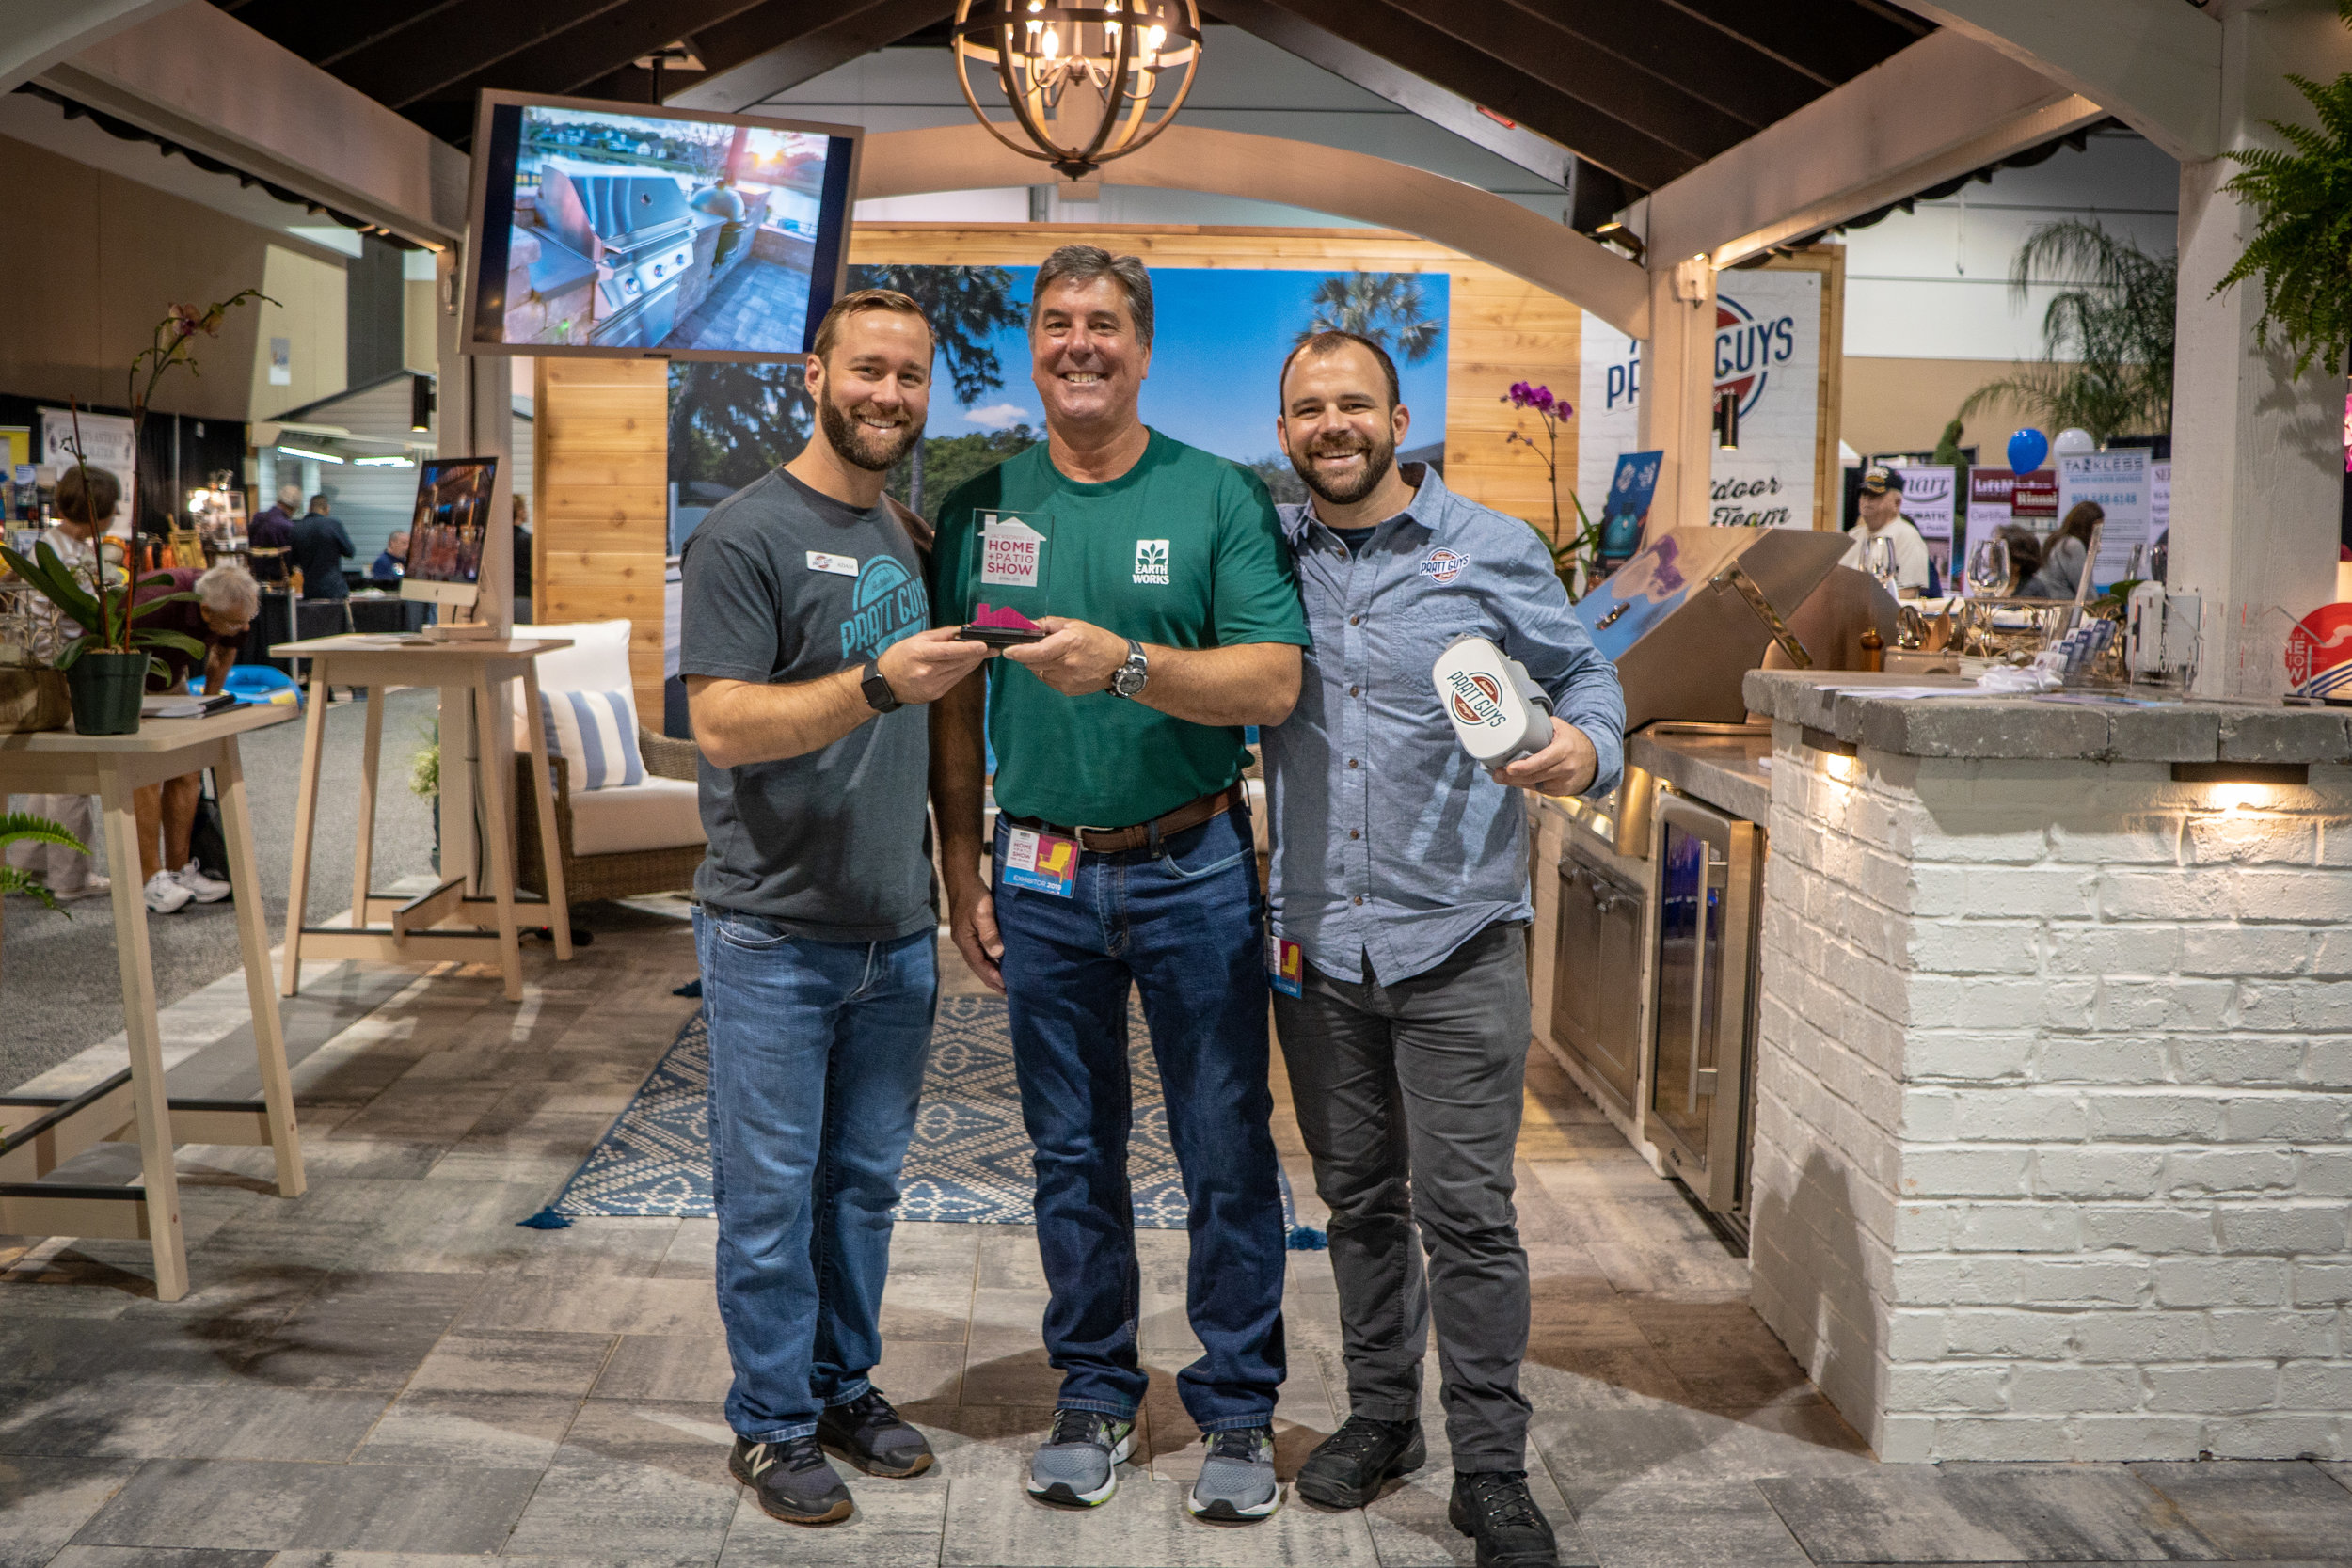 A moment during the 2019 Spring Jacksonville Home + Patio Show aka #HomeAndPrattio Show on 3/1/19 during the 4-day event that took place between February 28 and March 3, 2019. Photo copyright Pratt Guys 2019